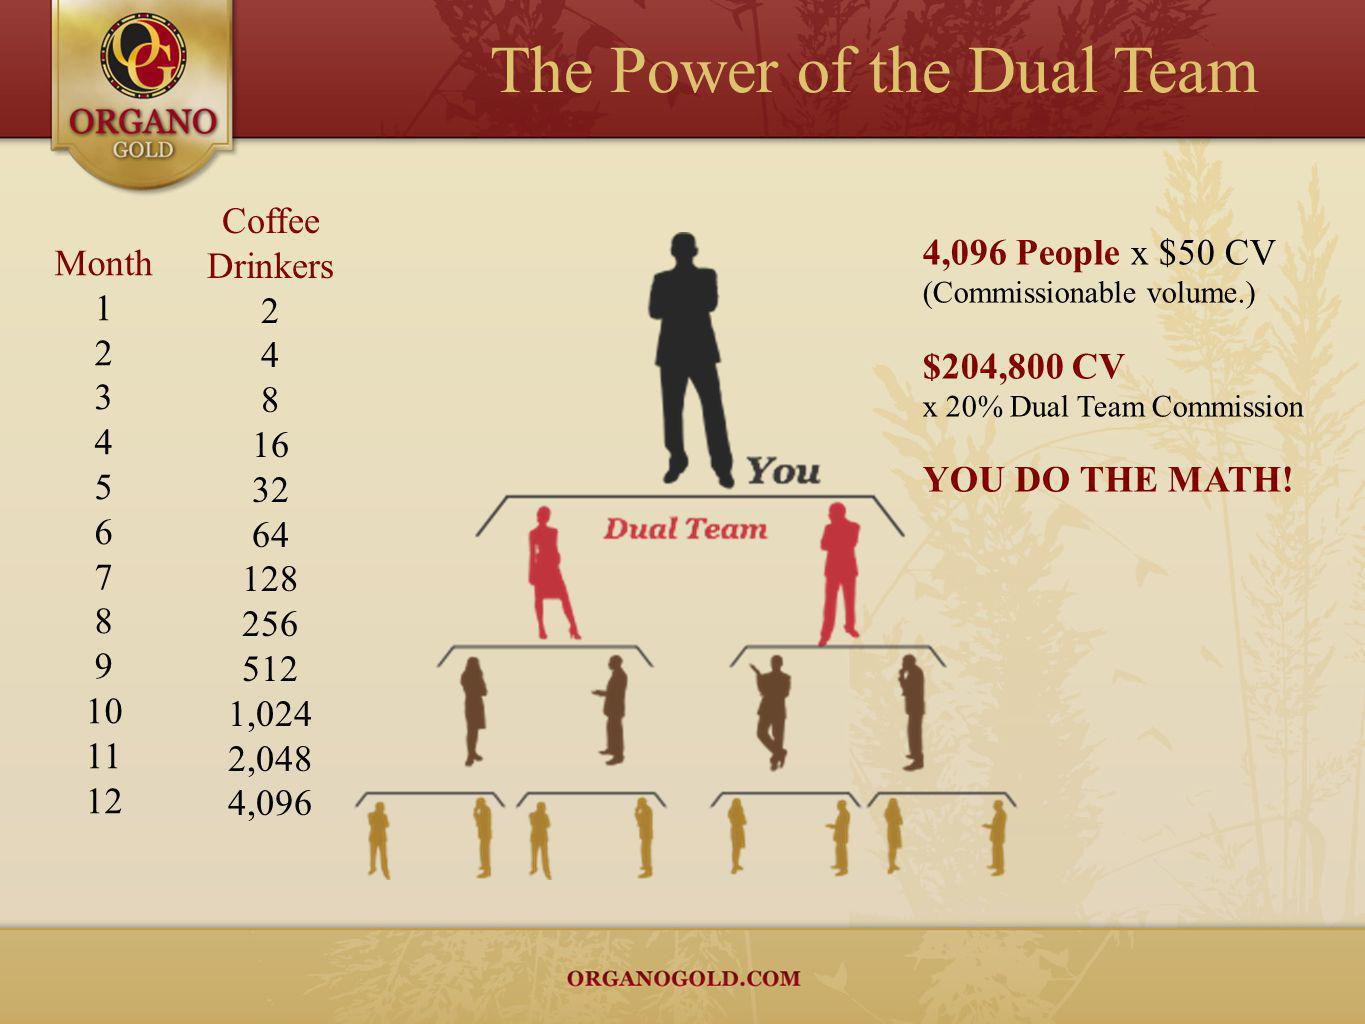 The Power of the Dual Team